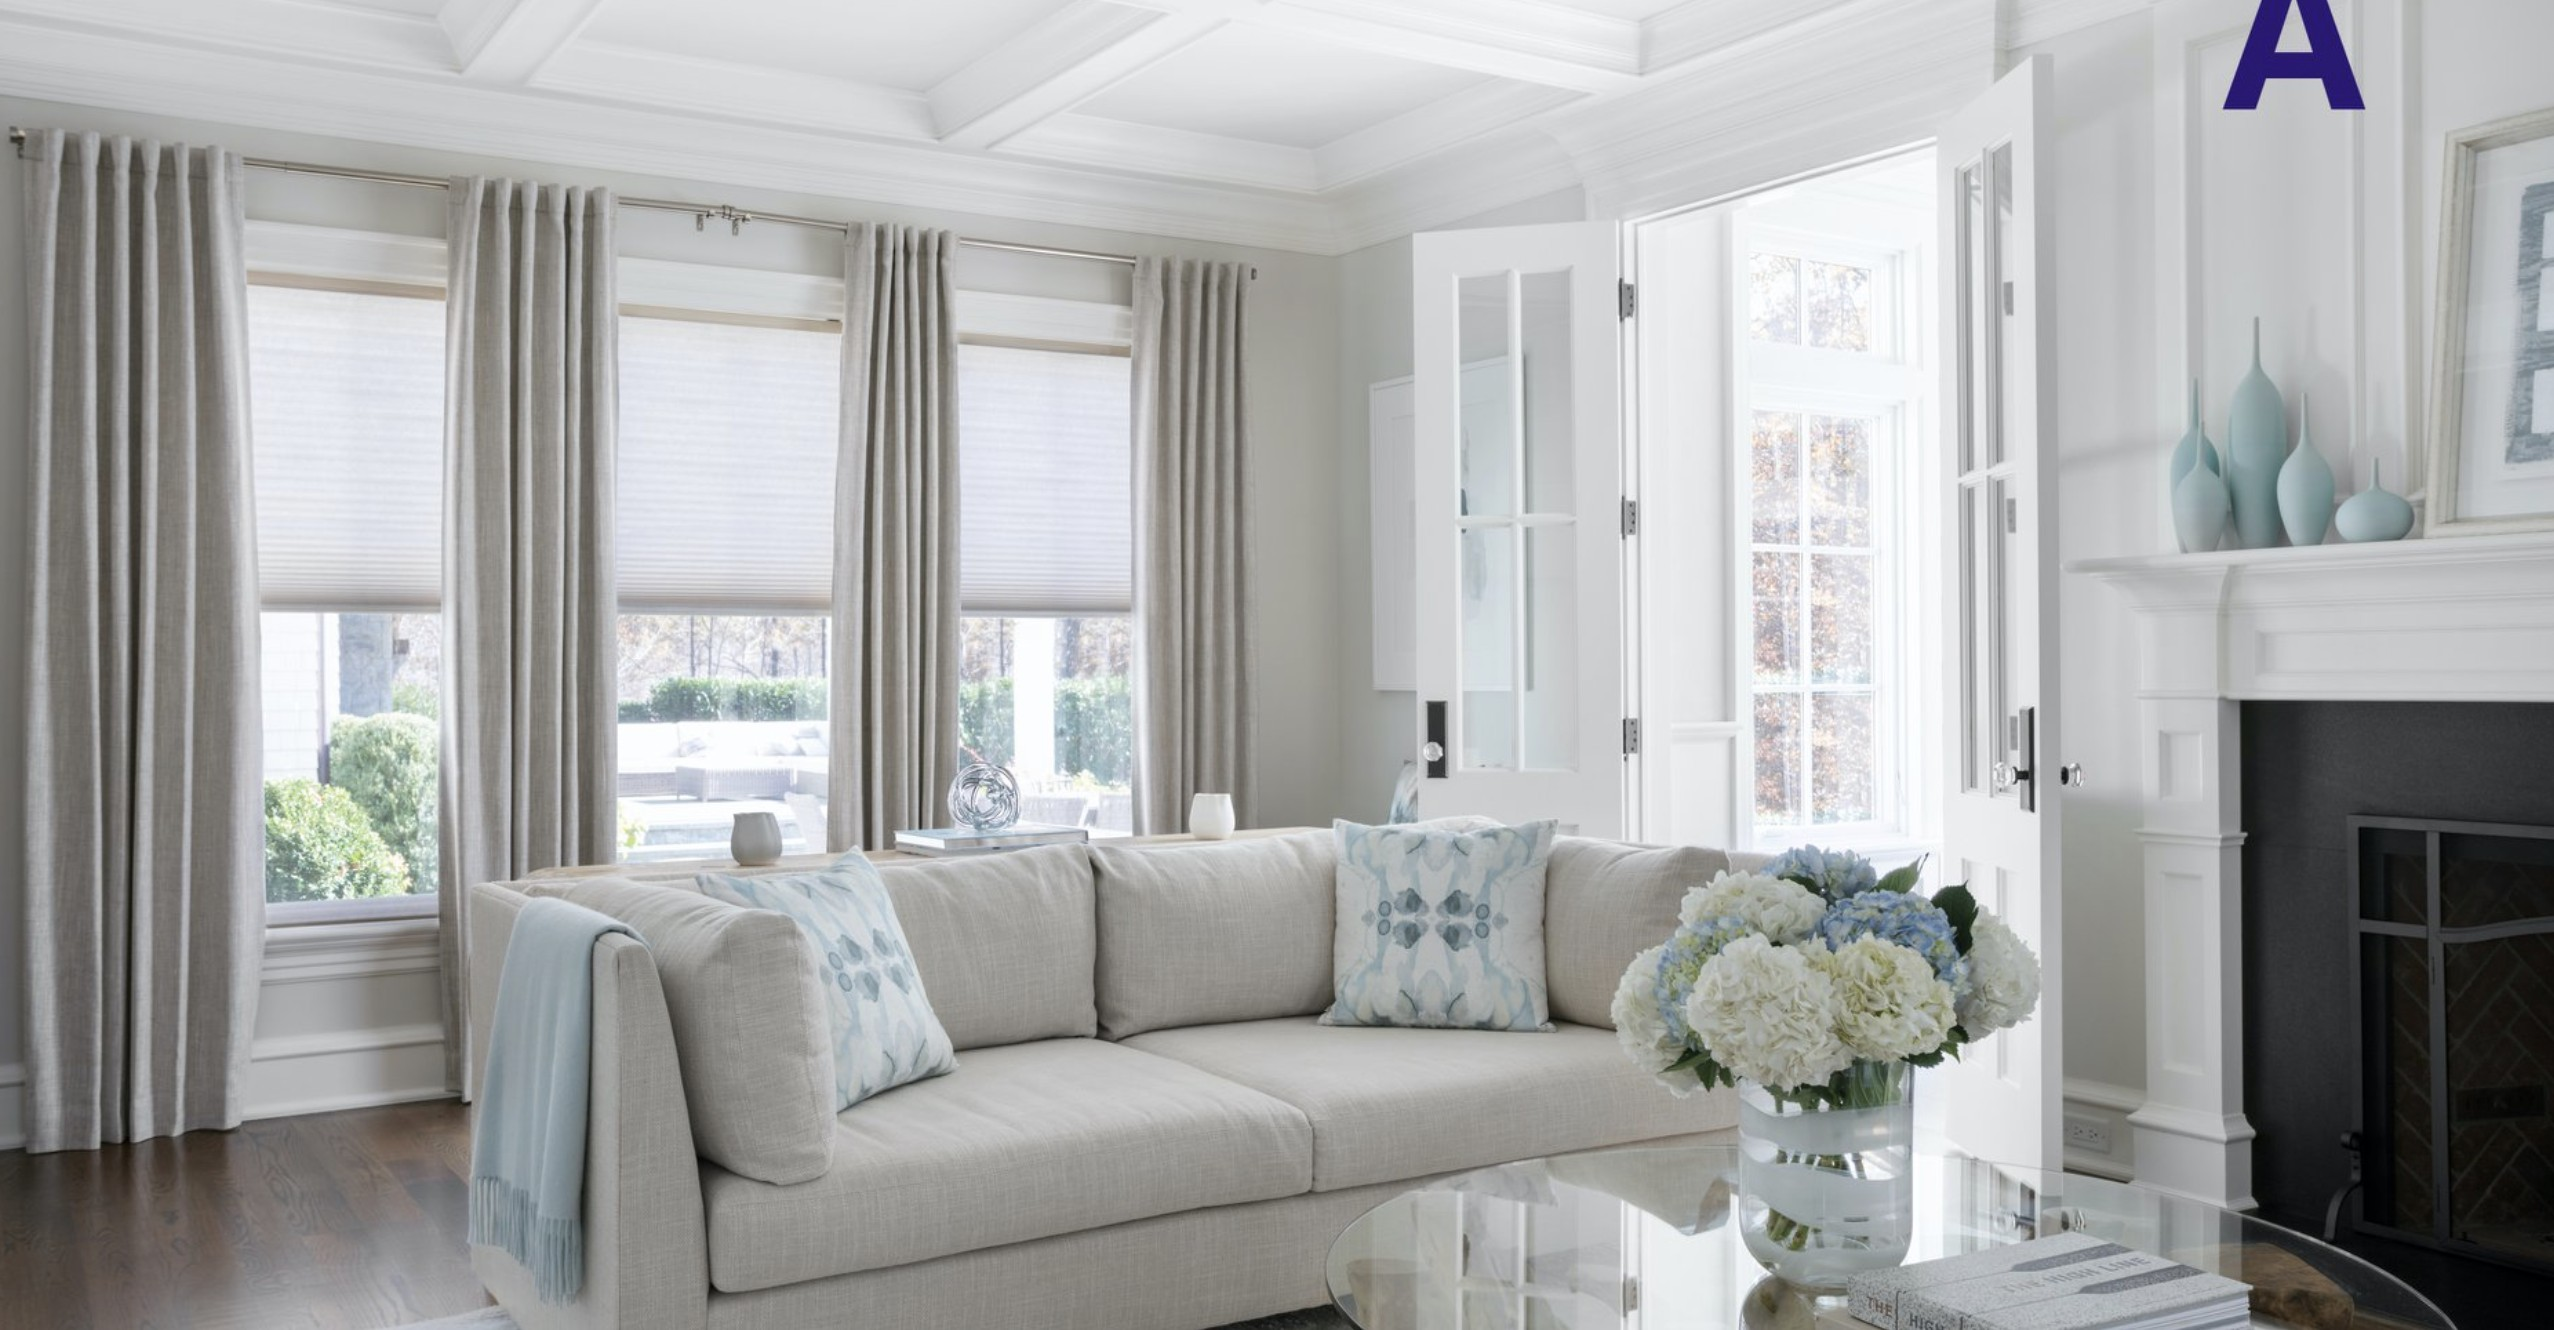 BLINDS: Buy custom blinds and shades online at SelectBlinds.com & save money over Big Box retailers! Best prices, most reviewed brand & online blinds store/company.